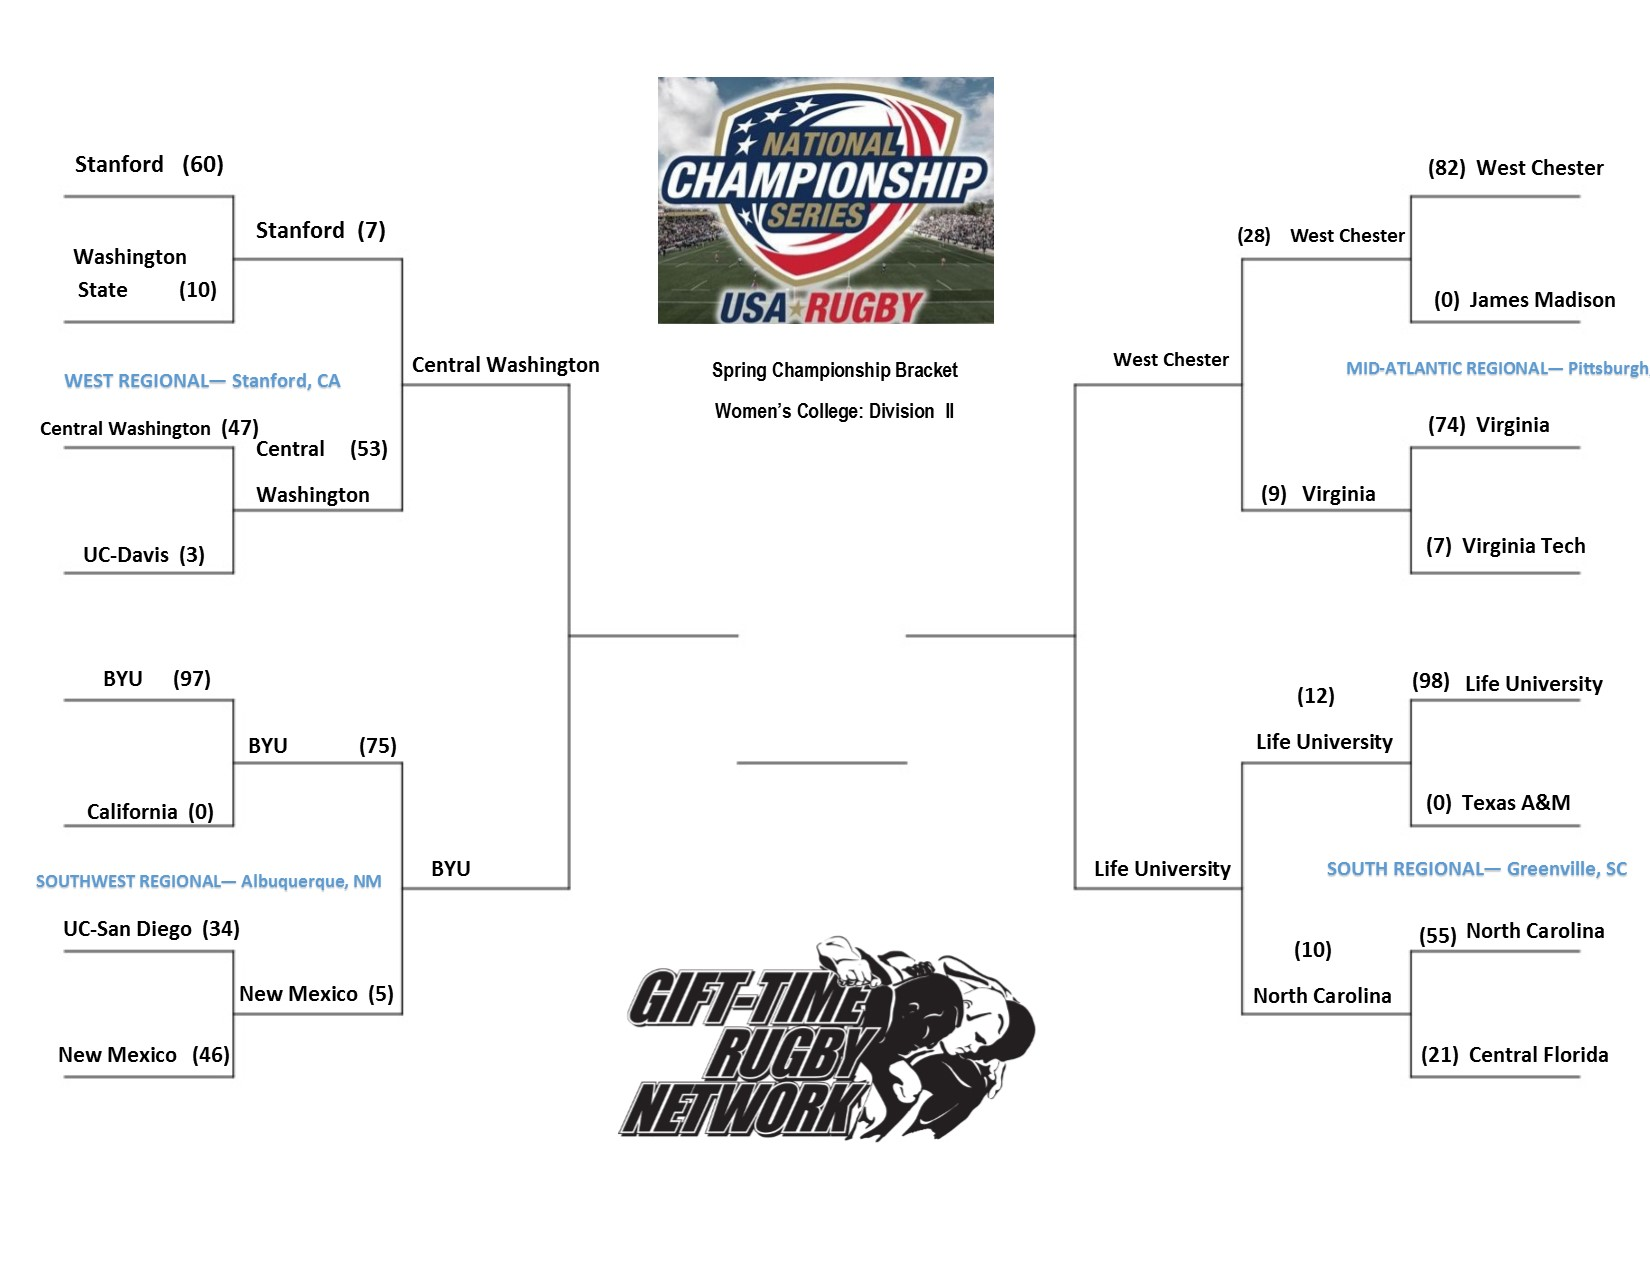 Women's DI Spring Championship Bracket after weekend of April 11th